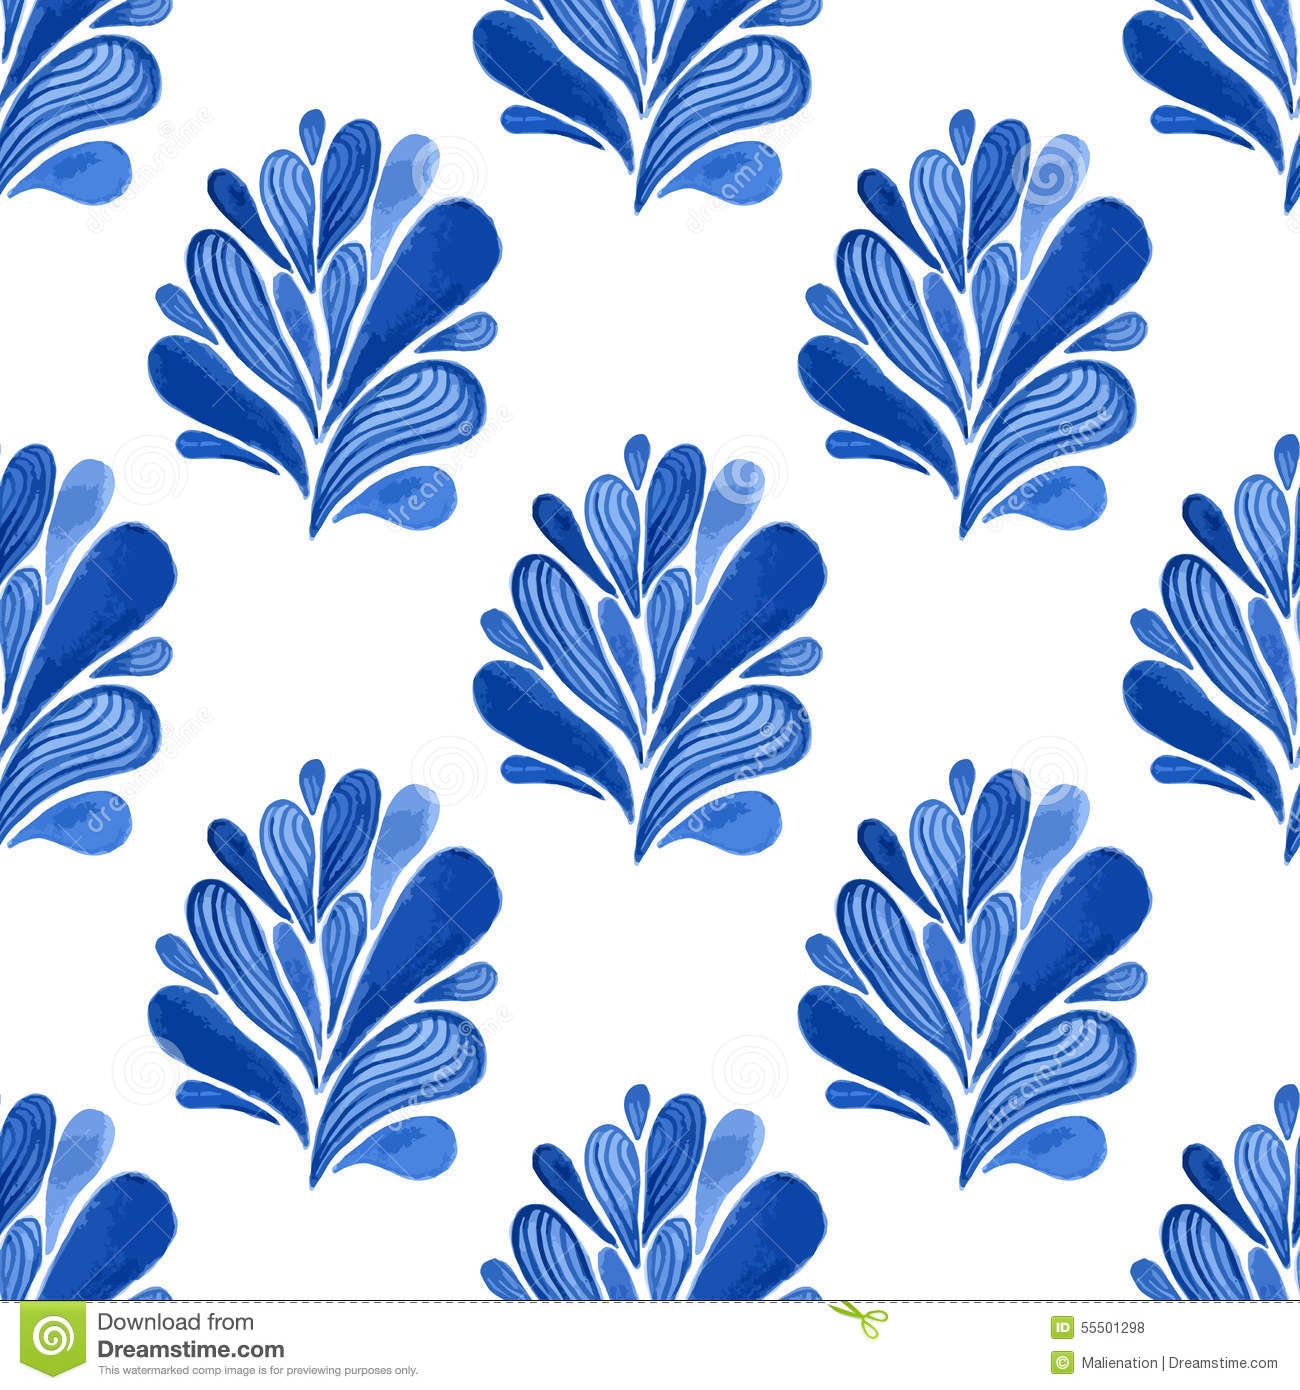 Watercolor Blue Floral Seamless Pattern With Leaves